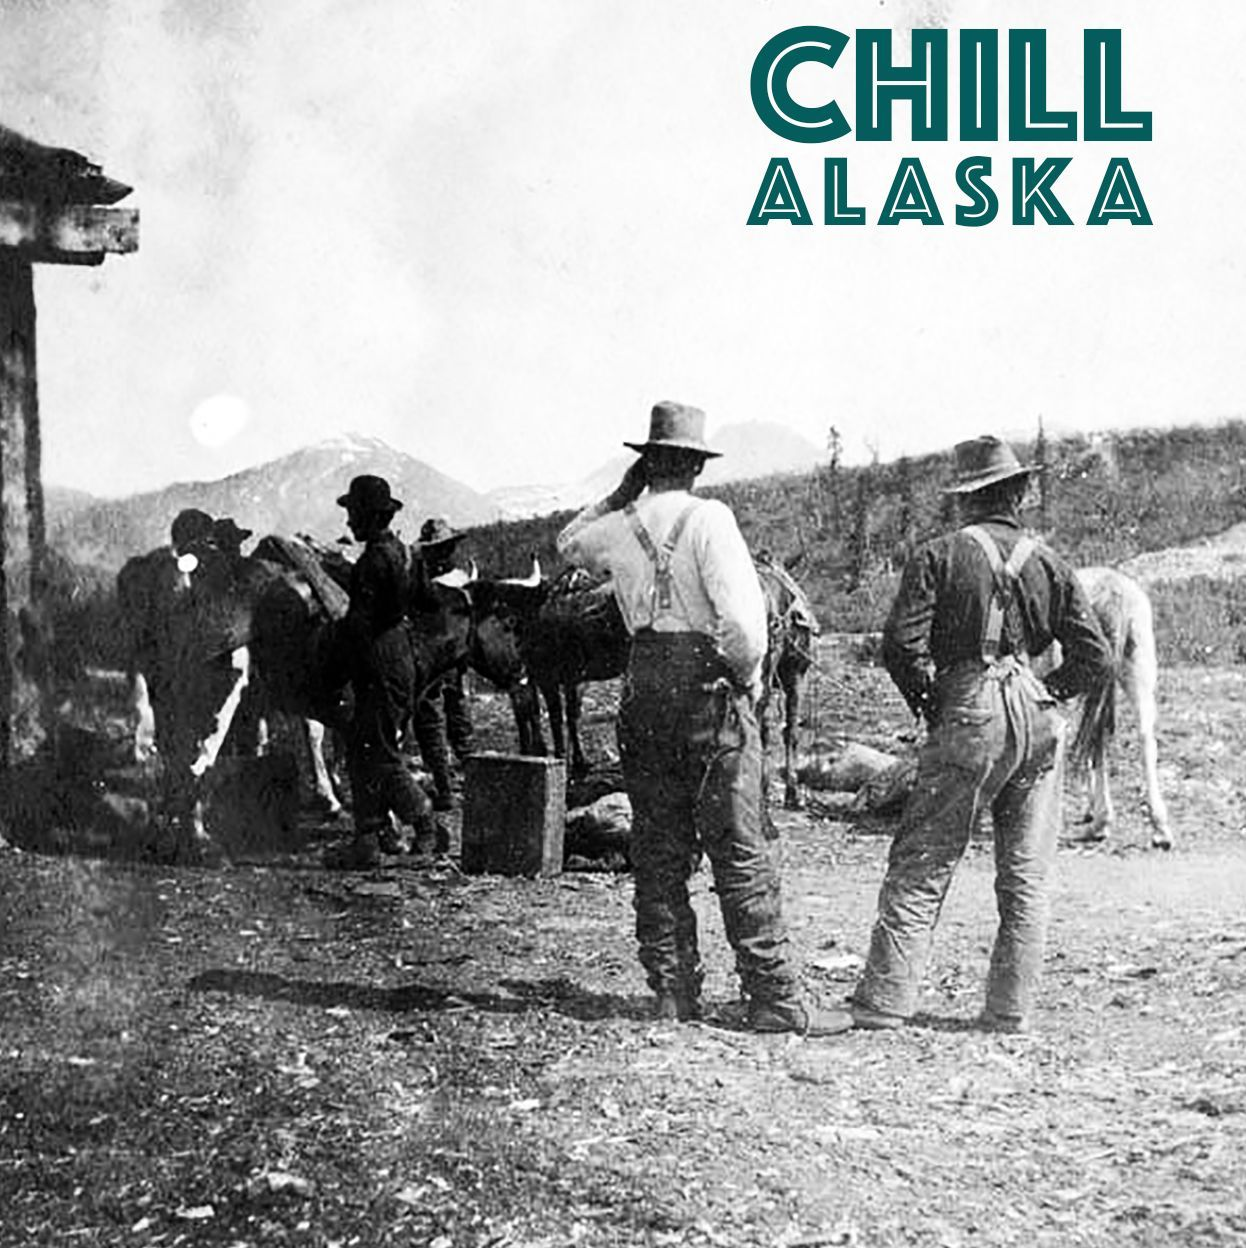 Pin On Alaska Historic Chill